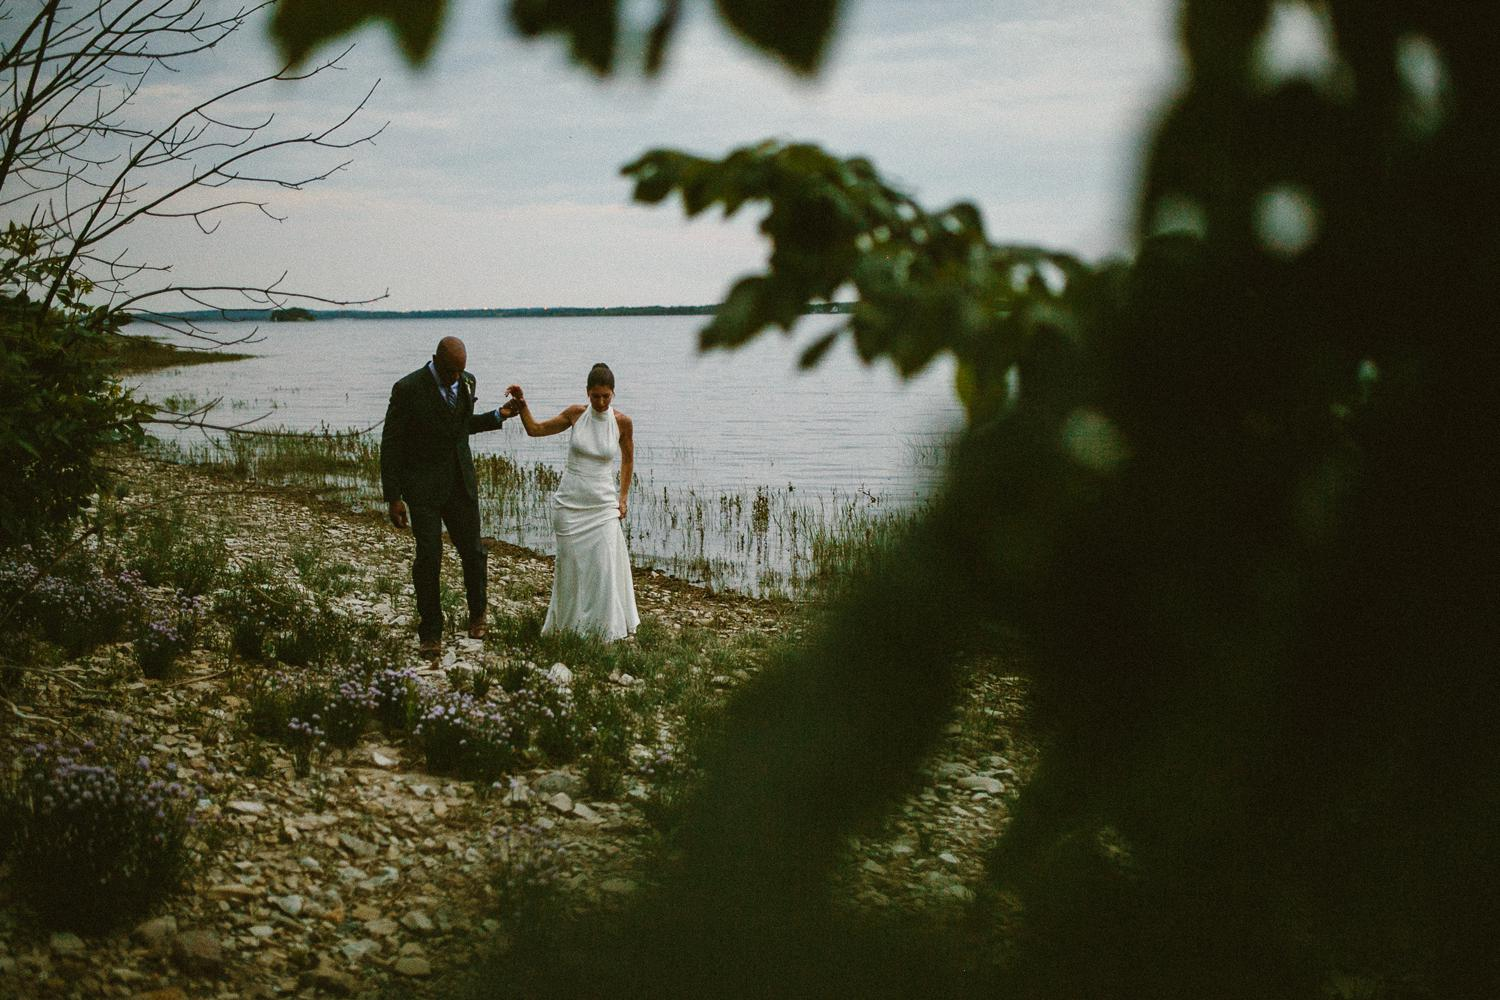 ottawa river small intimate wedding-258.jpg